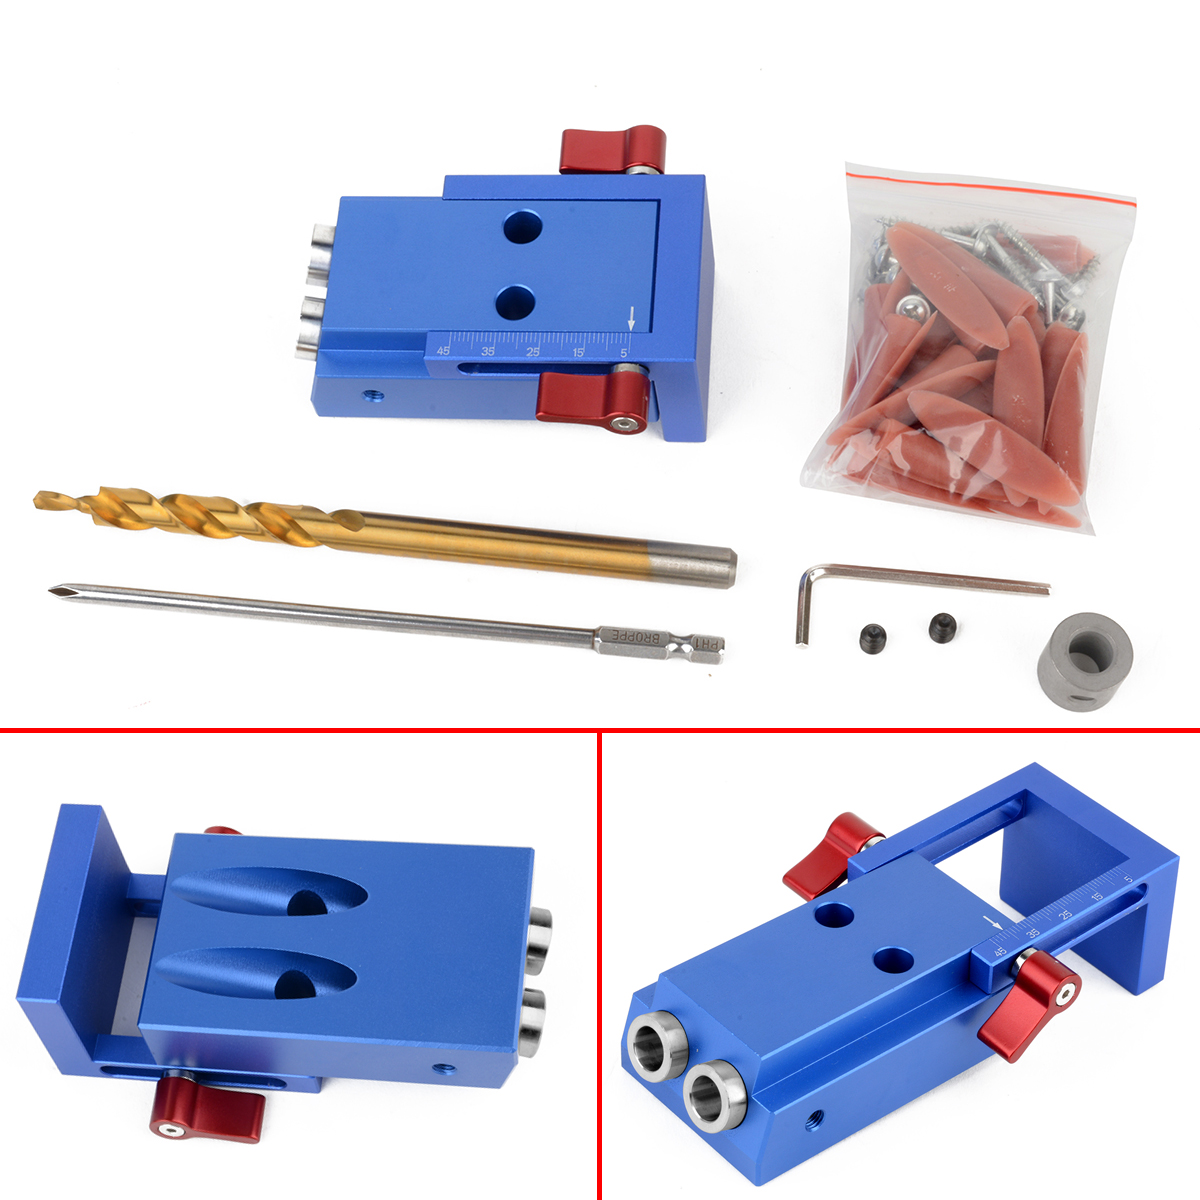 1 Set Mini Pocket Hole Jig Kit Screwdriver Step Drill Bit Wrench with Box Woodworking Tool Kit Newest 20pcs m3 m12 screw thread metric plugs taps tap wrench die wrench set